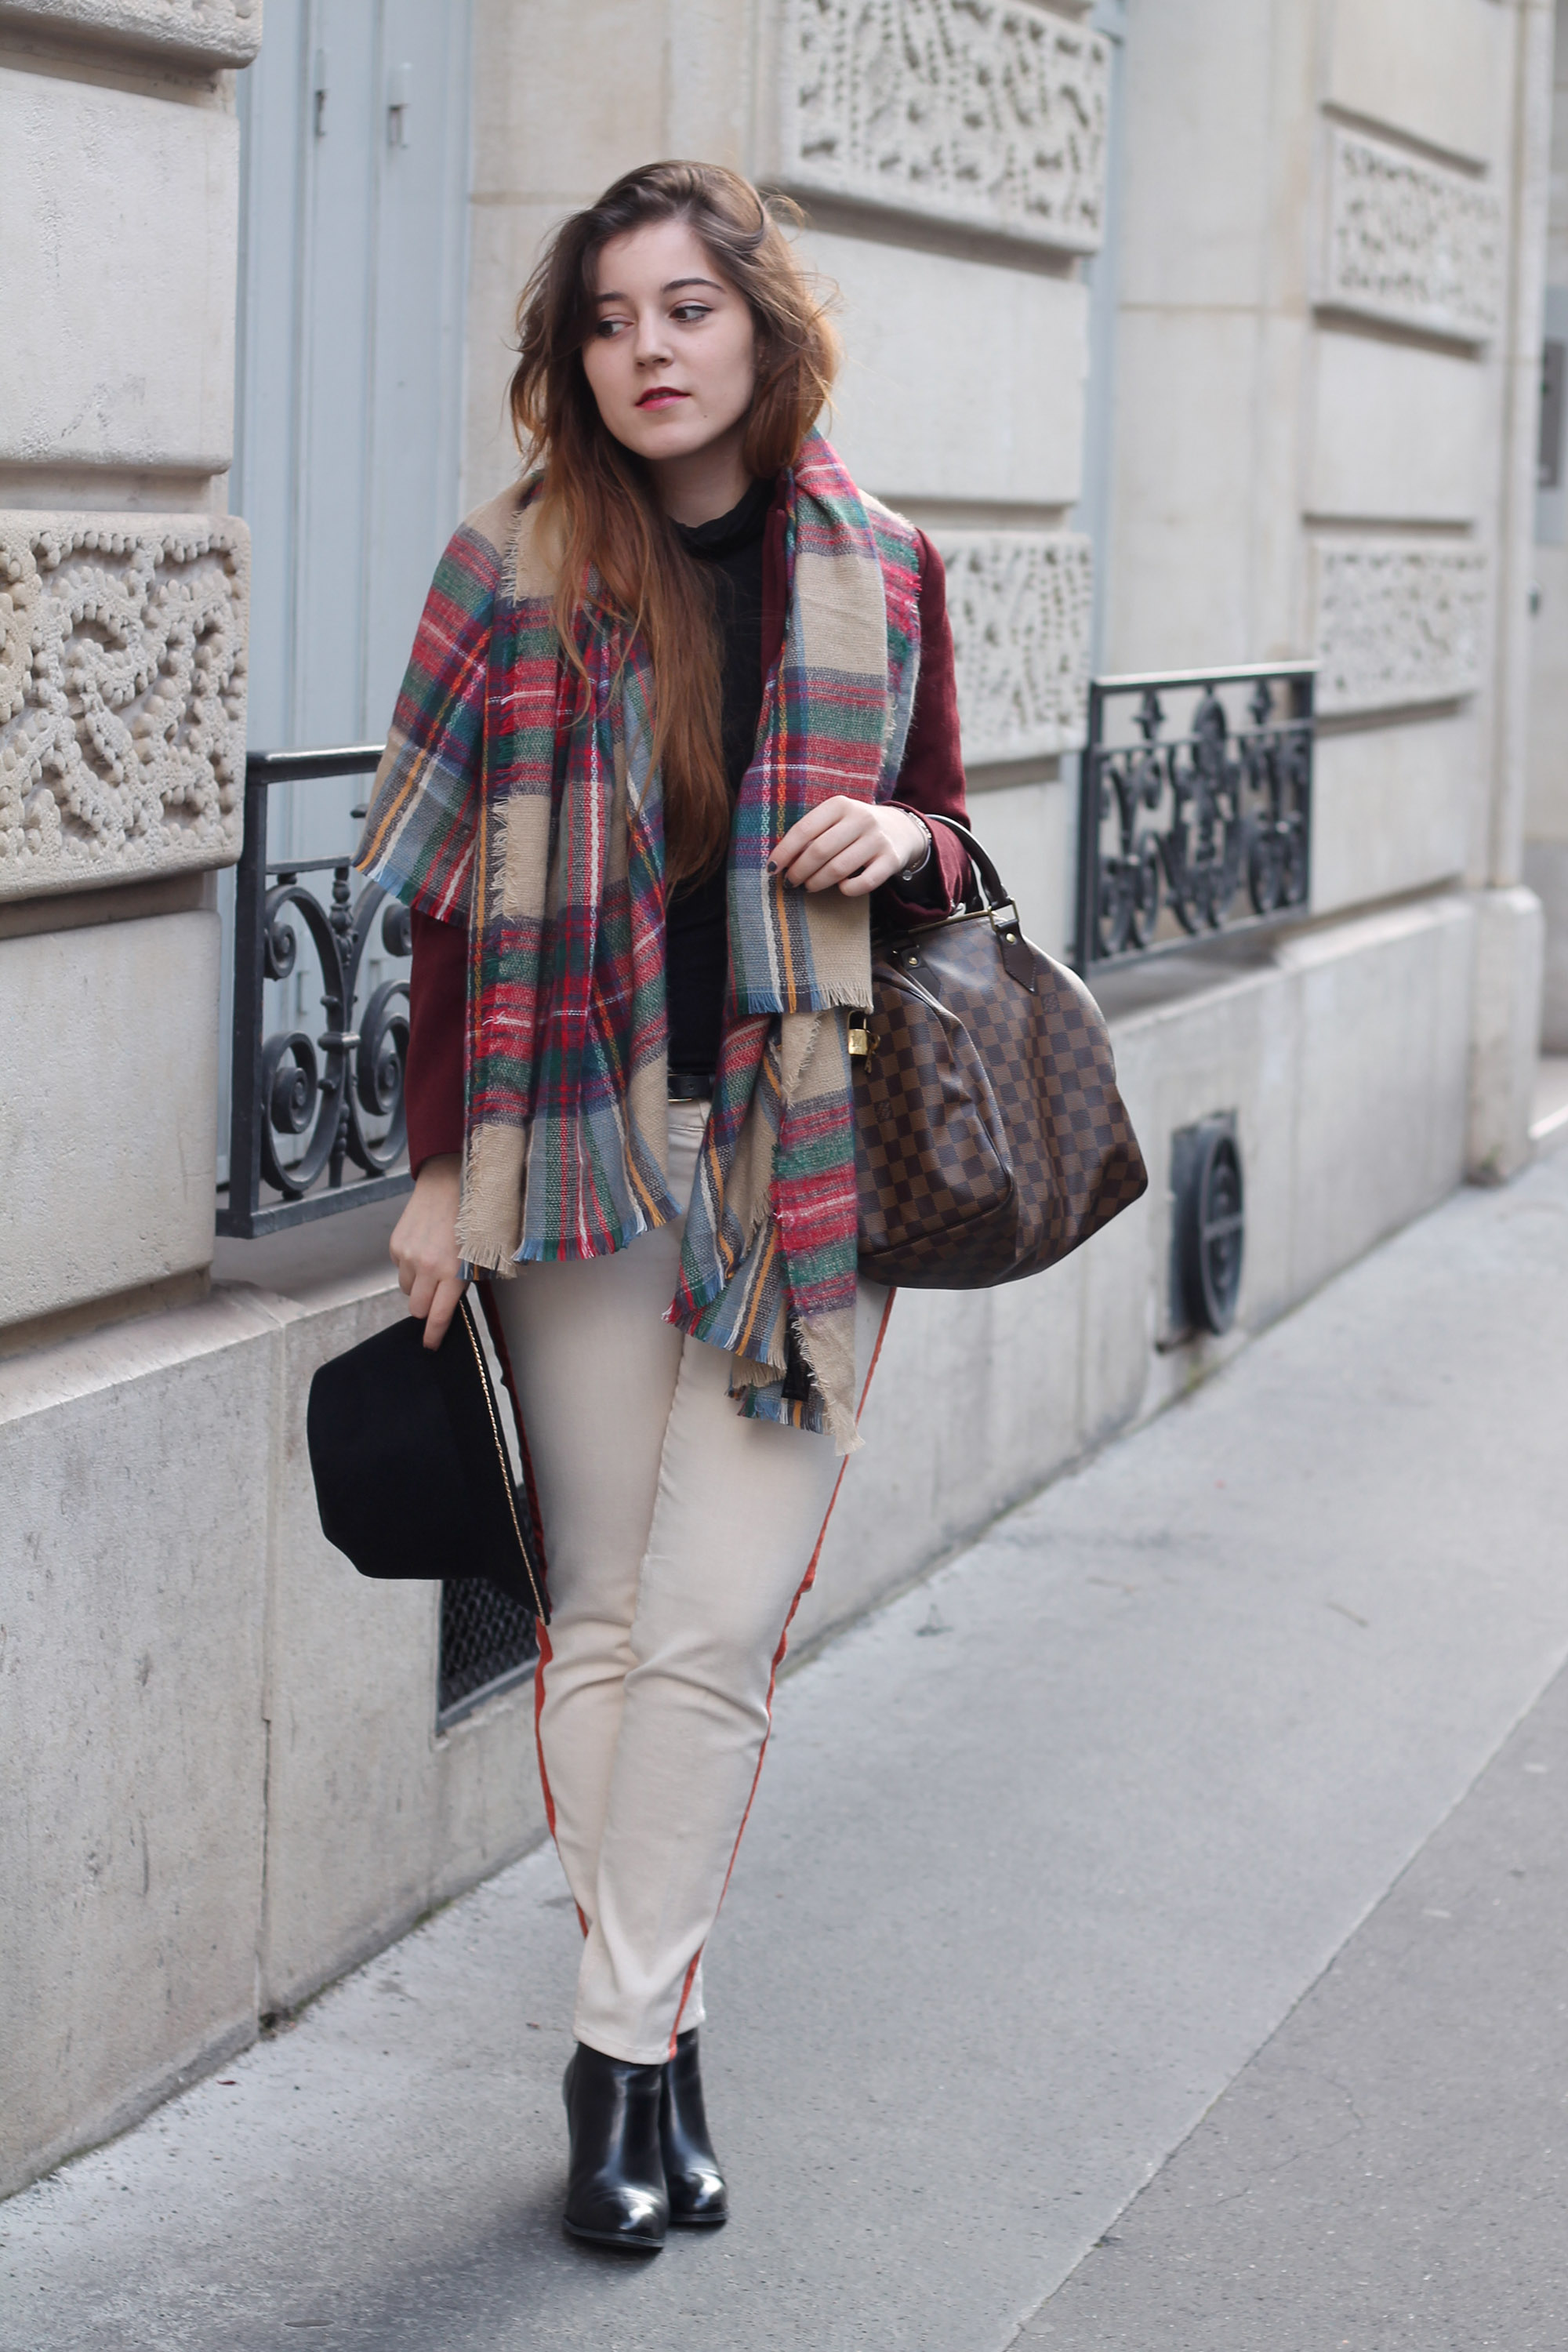 Tendance echarpe plaid elodie in paris - Grosse echarpe plaid ...